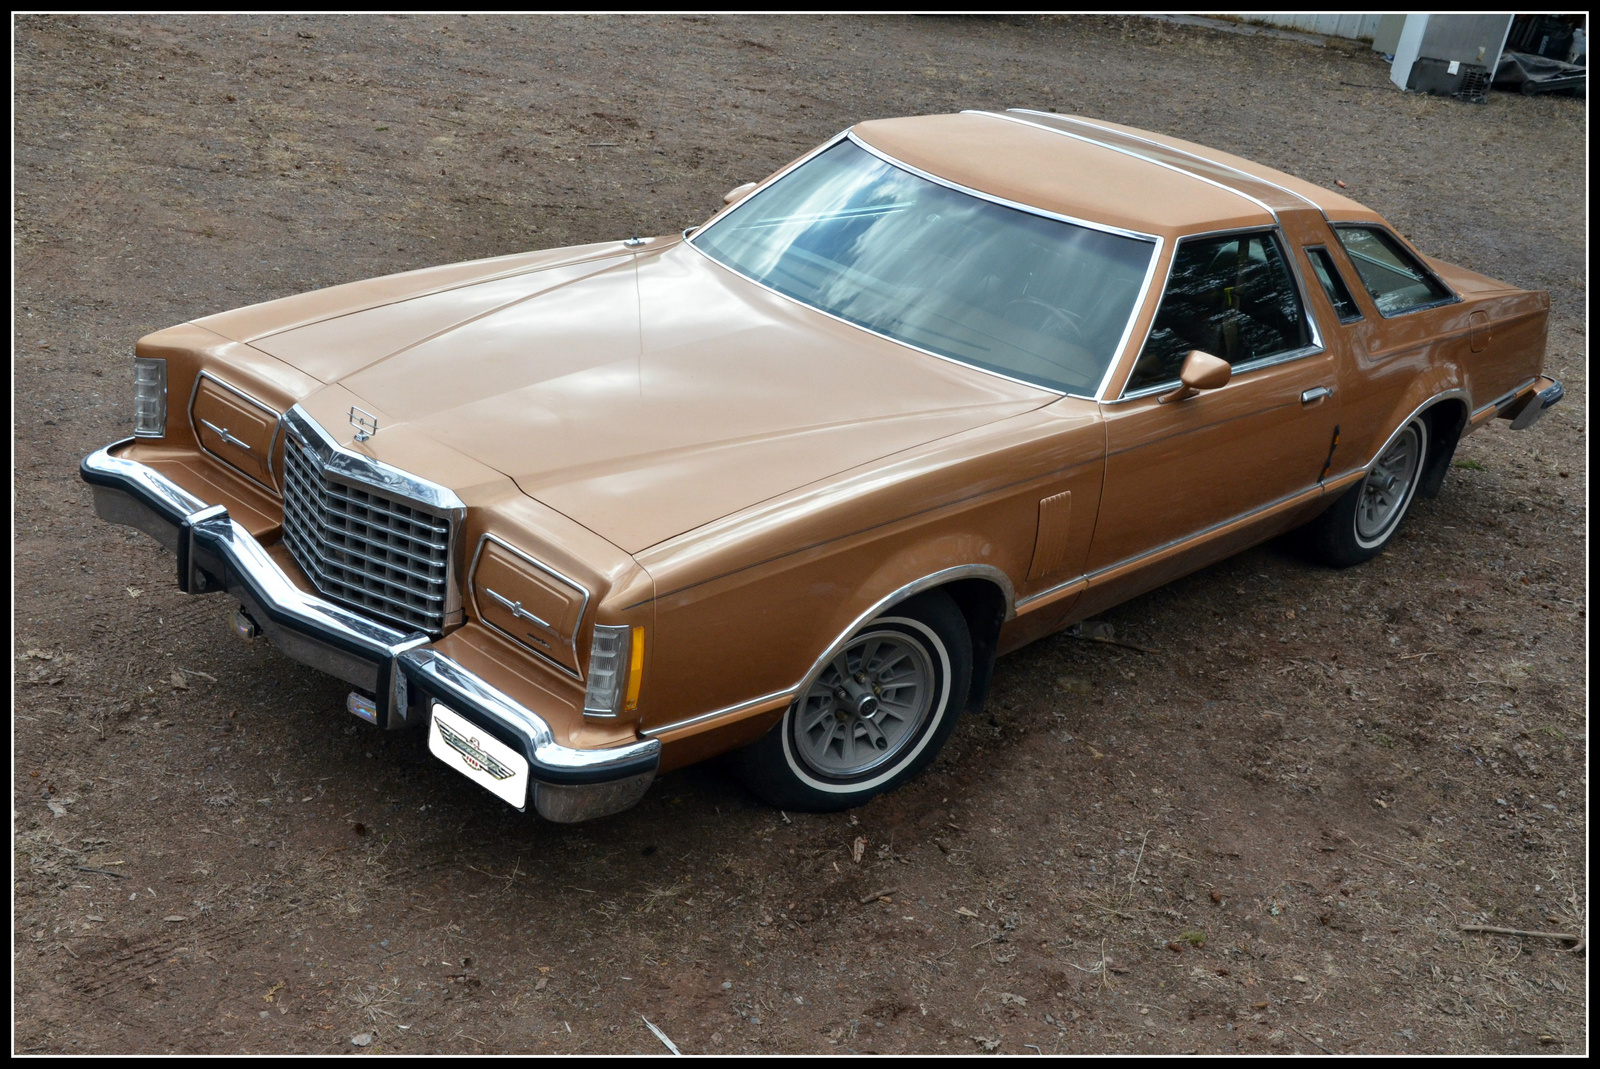 Looking for a used thunderbird in your area